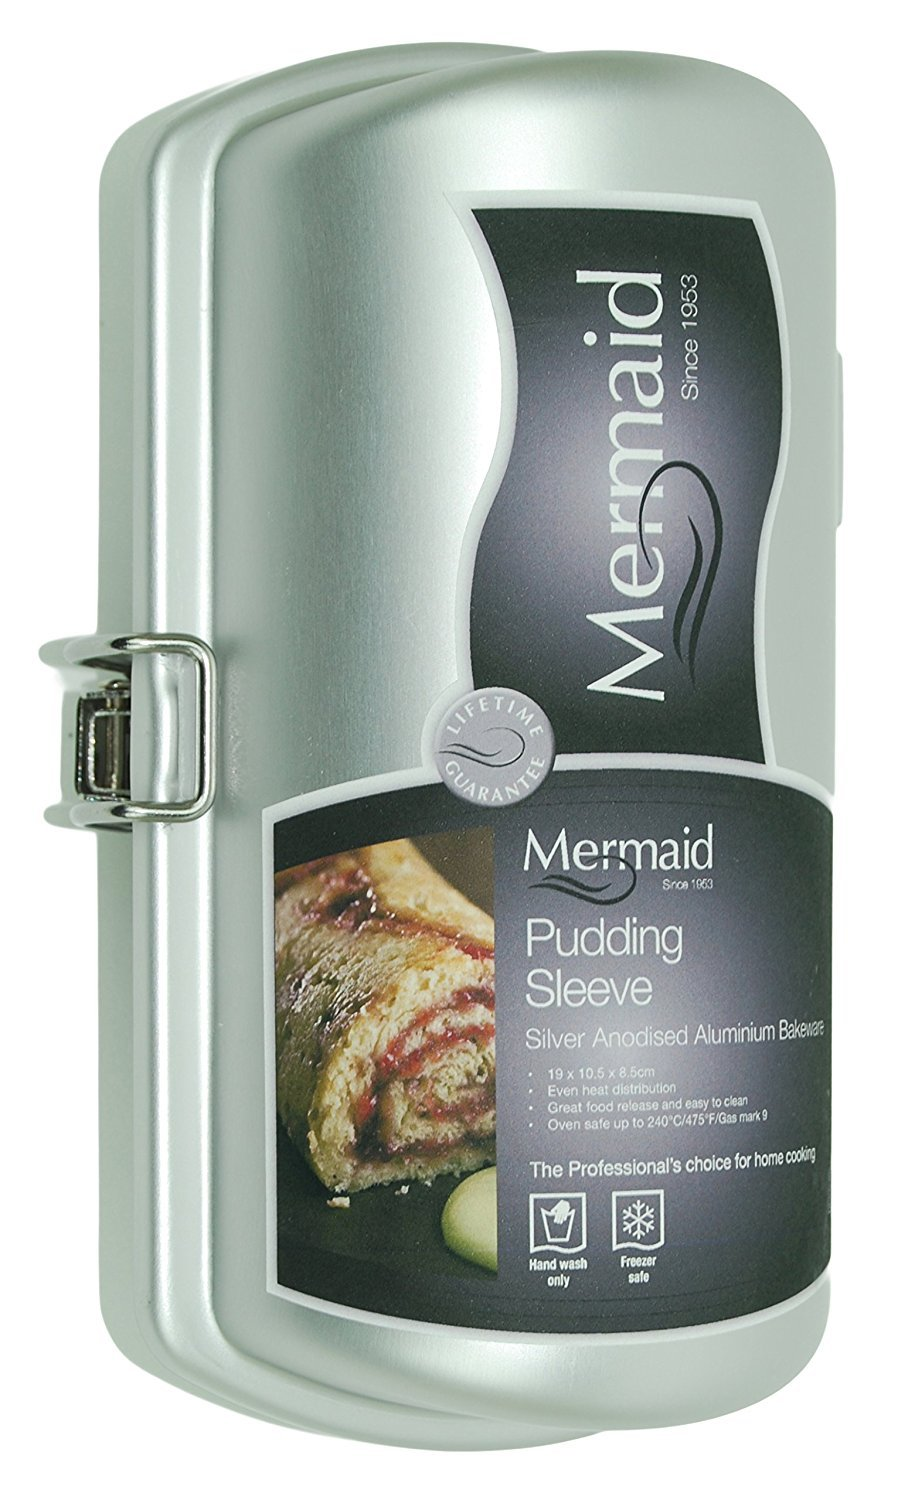 Mermaid M8720 Pudding Sleeve | amazon.co.uk